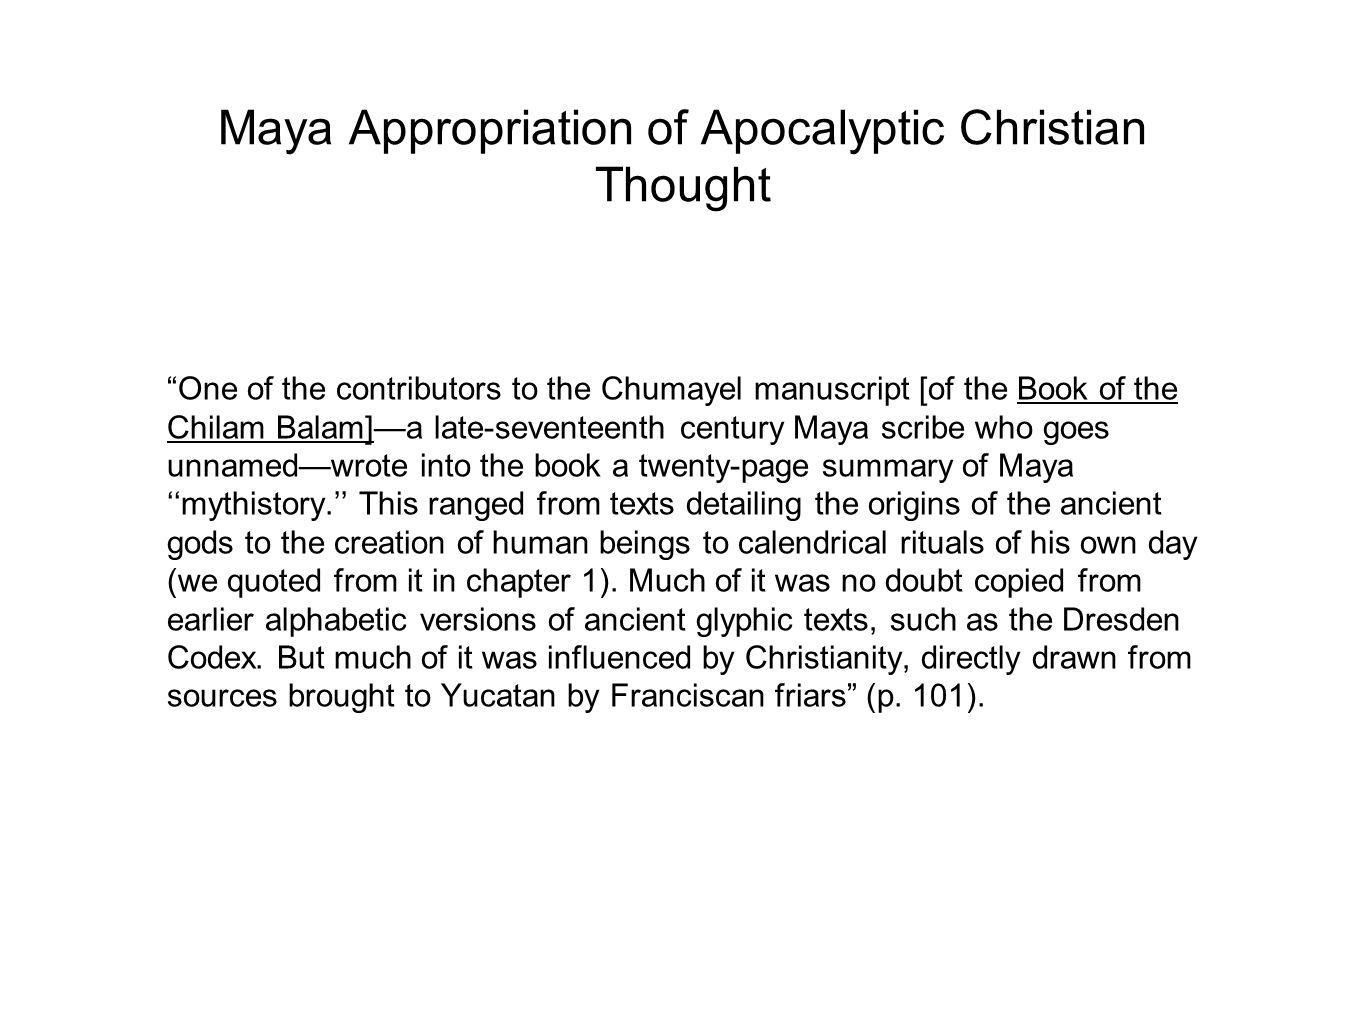 Maya Appropriation of Apocalyptic Christian Thought One of the contributors to the Chumayel manuscript [of the Book of the Chilam Balam]—a late-seventeenth century Maya scribe who goes unnamed—wrote into the book a twenty-page summary of Maya ''mythistory.'' This ranged from texts detailing the origins of the ancient gods to the creation of human beings to calendrical rituals of his own day (we quoted from it in chapter 1).